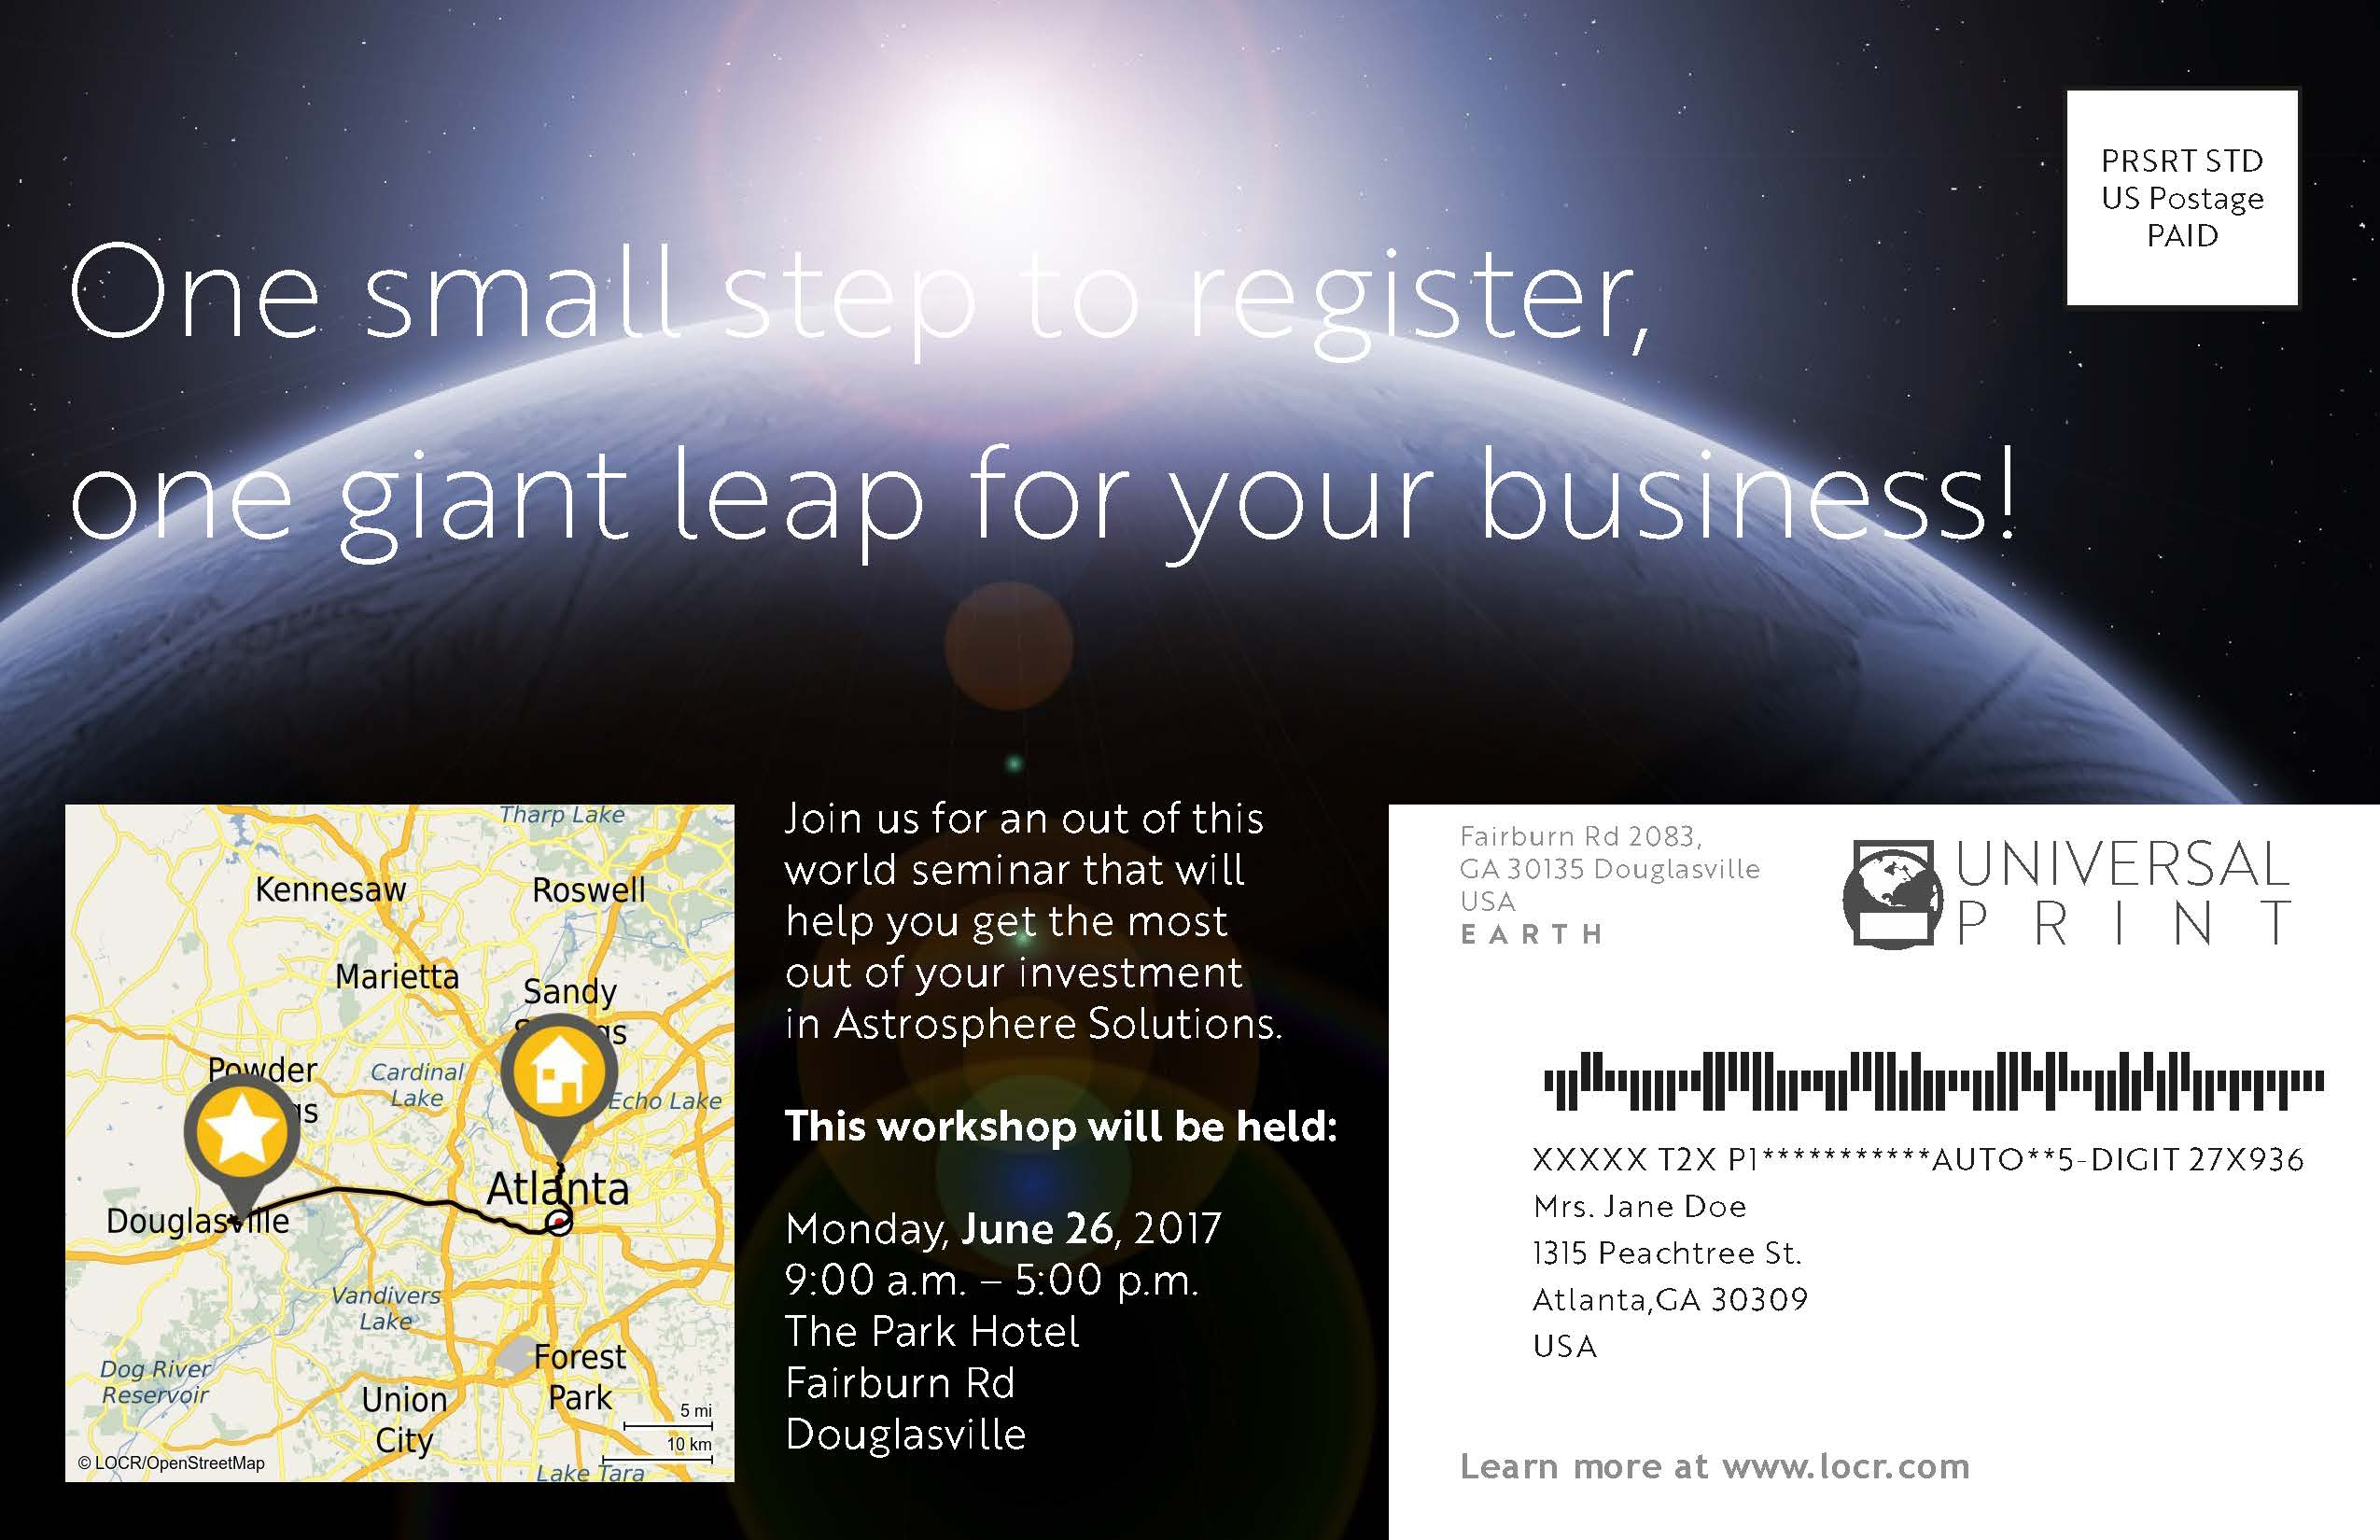 Creative Space Invitation Example With locr Personalized Maps